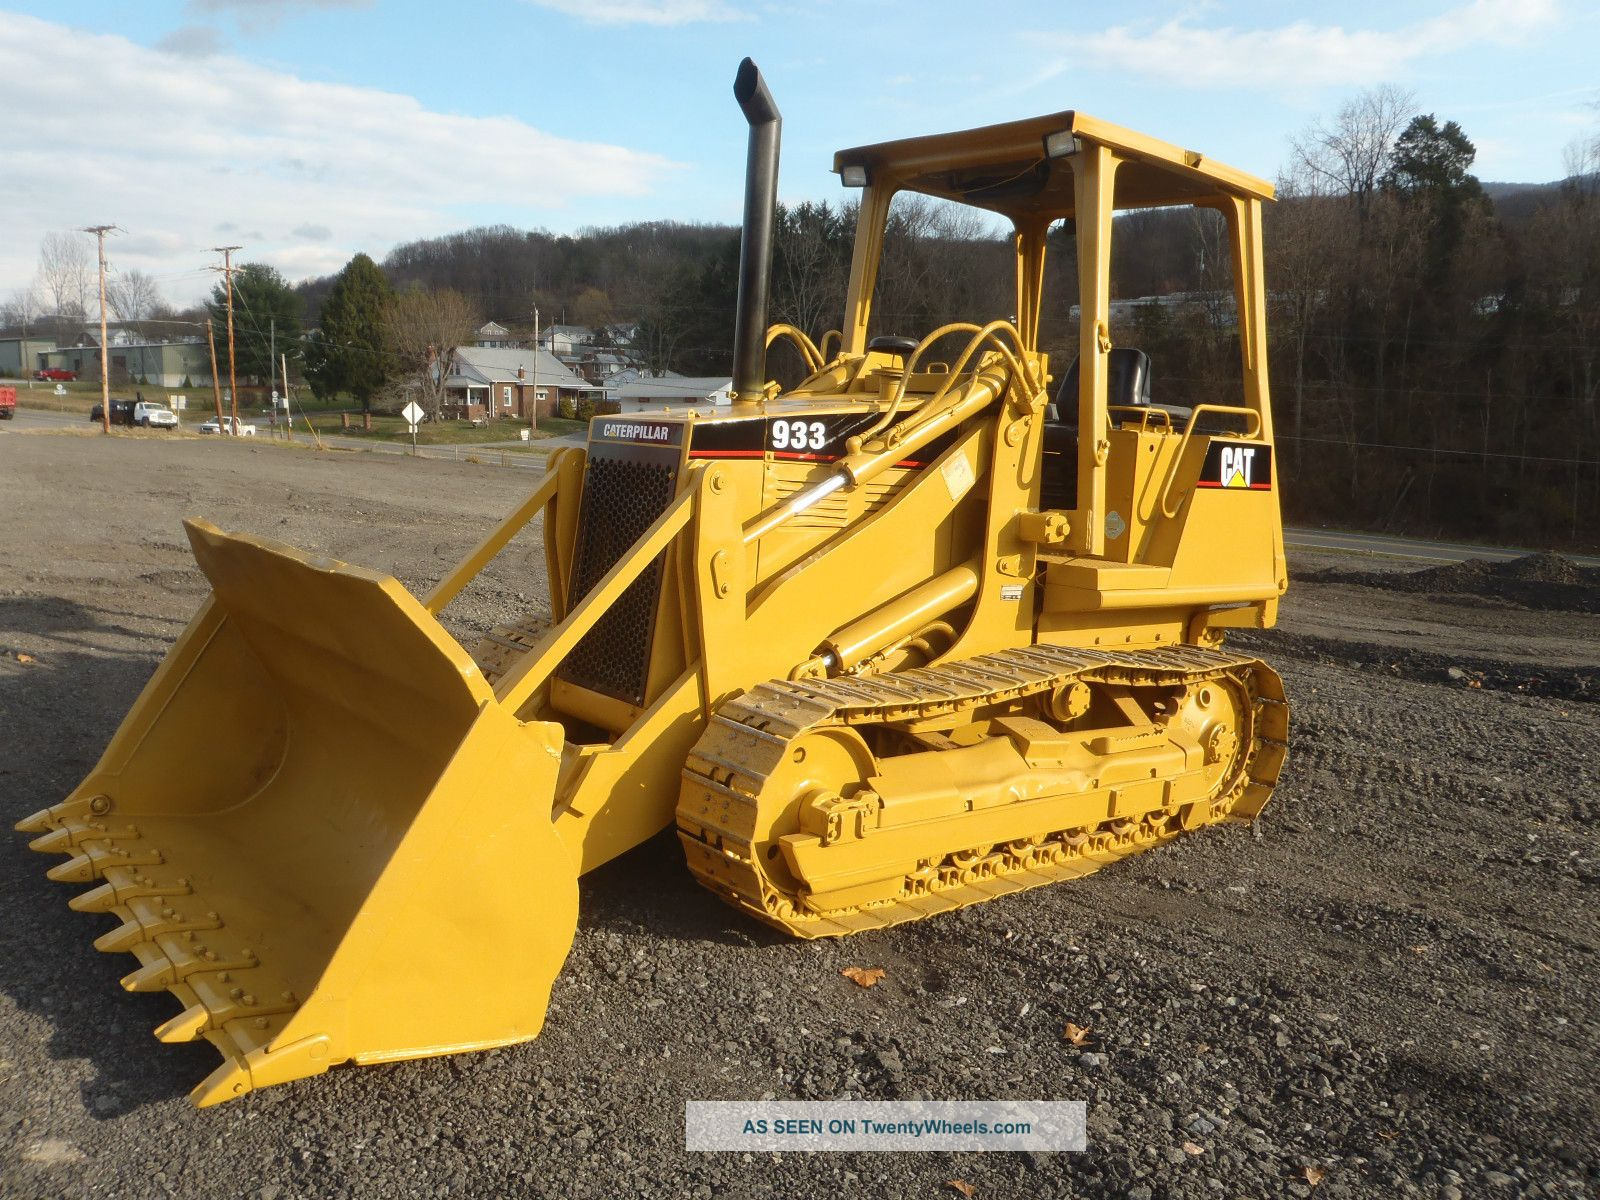 1997 Caterpillar 933 Track Loader Dozer Gp Bucket 4730 Hrs Ready To Work Look Crawler Dozers & Loaders photo